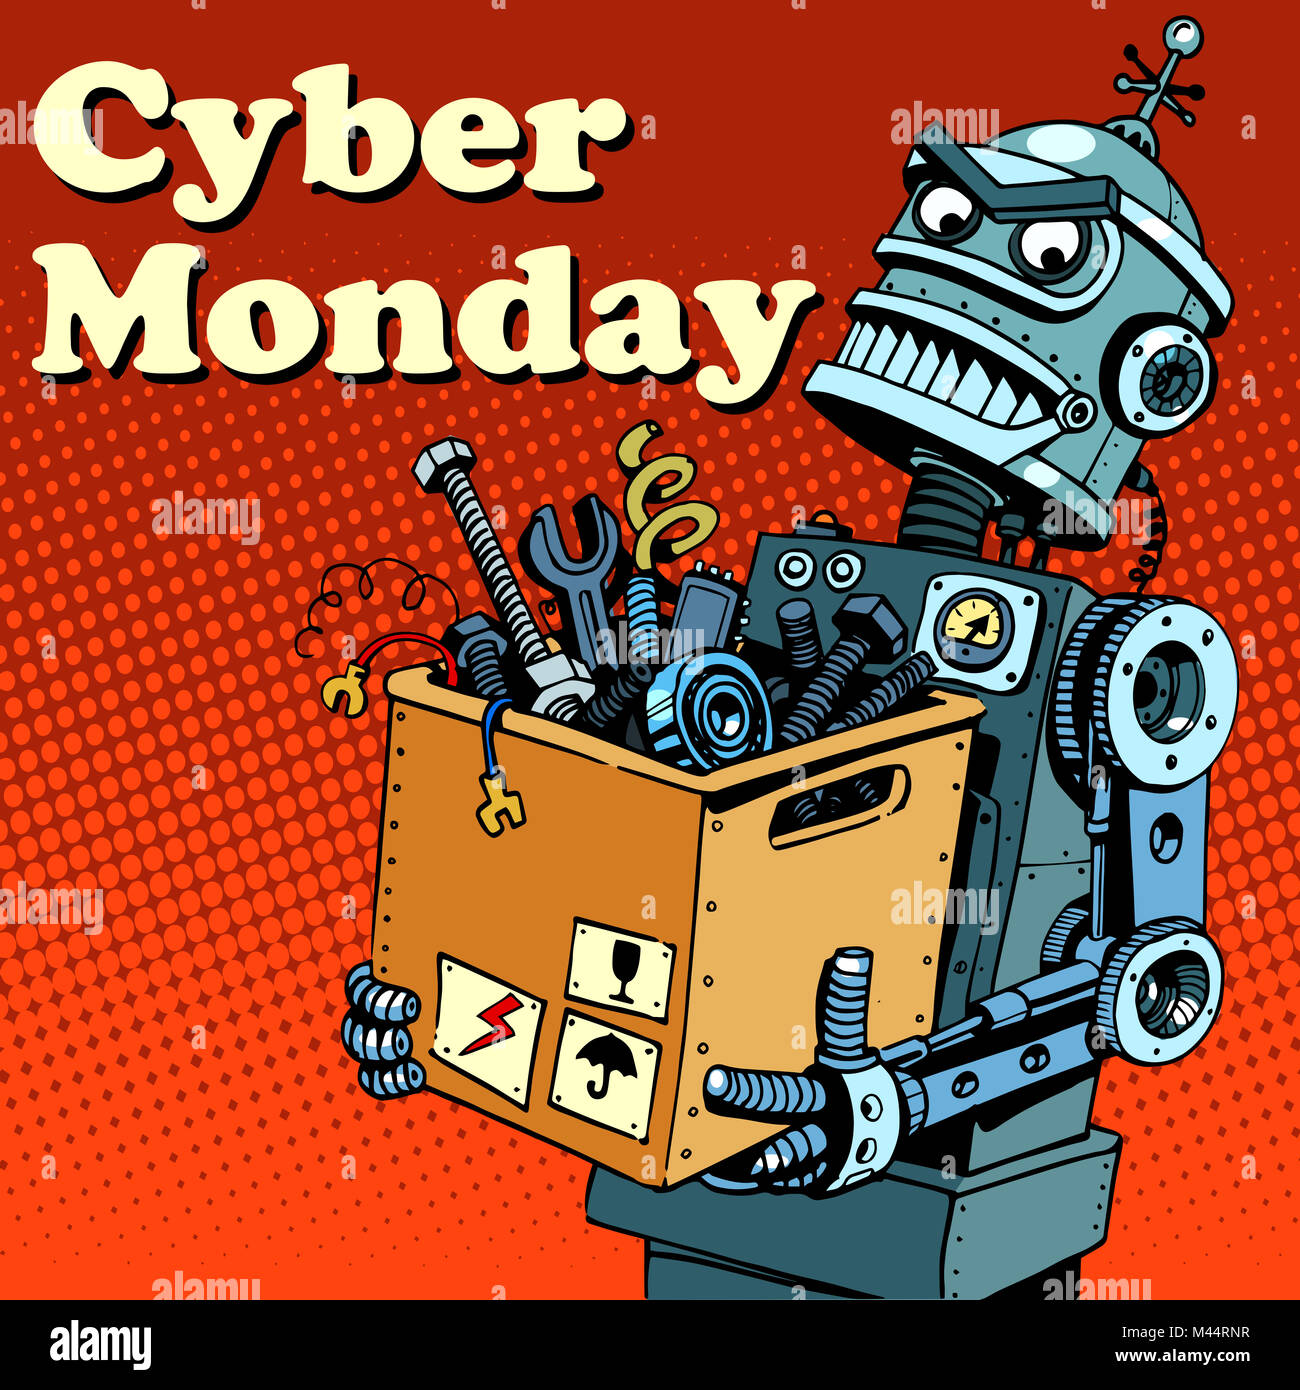 Robot Cyber Monday gadgets and electronics - Stock Image